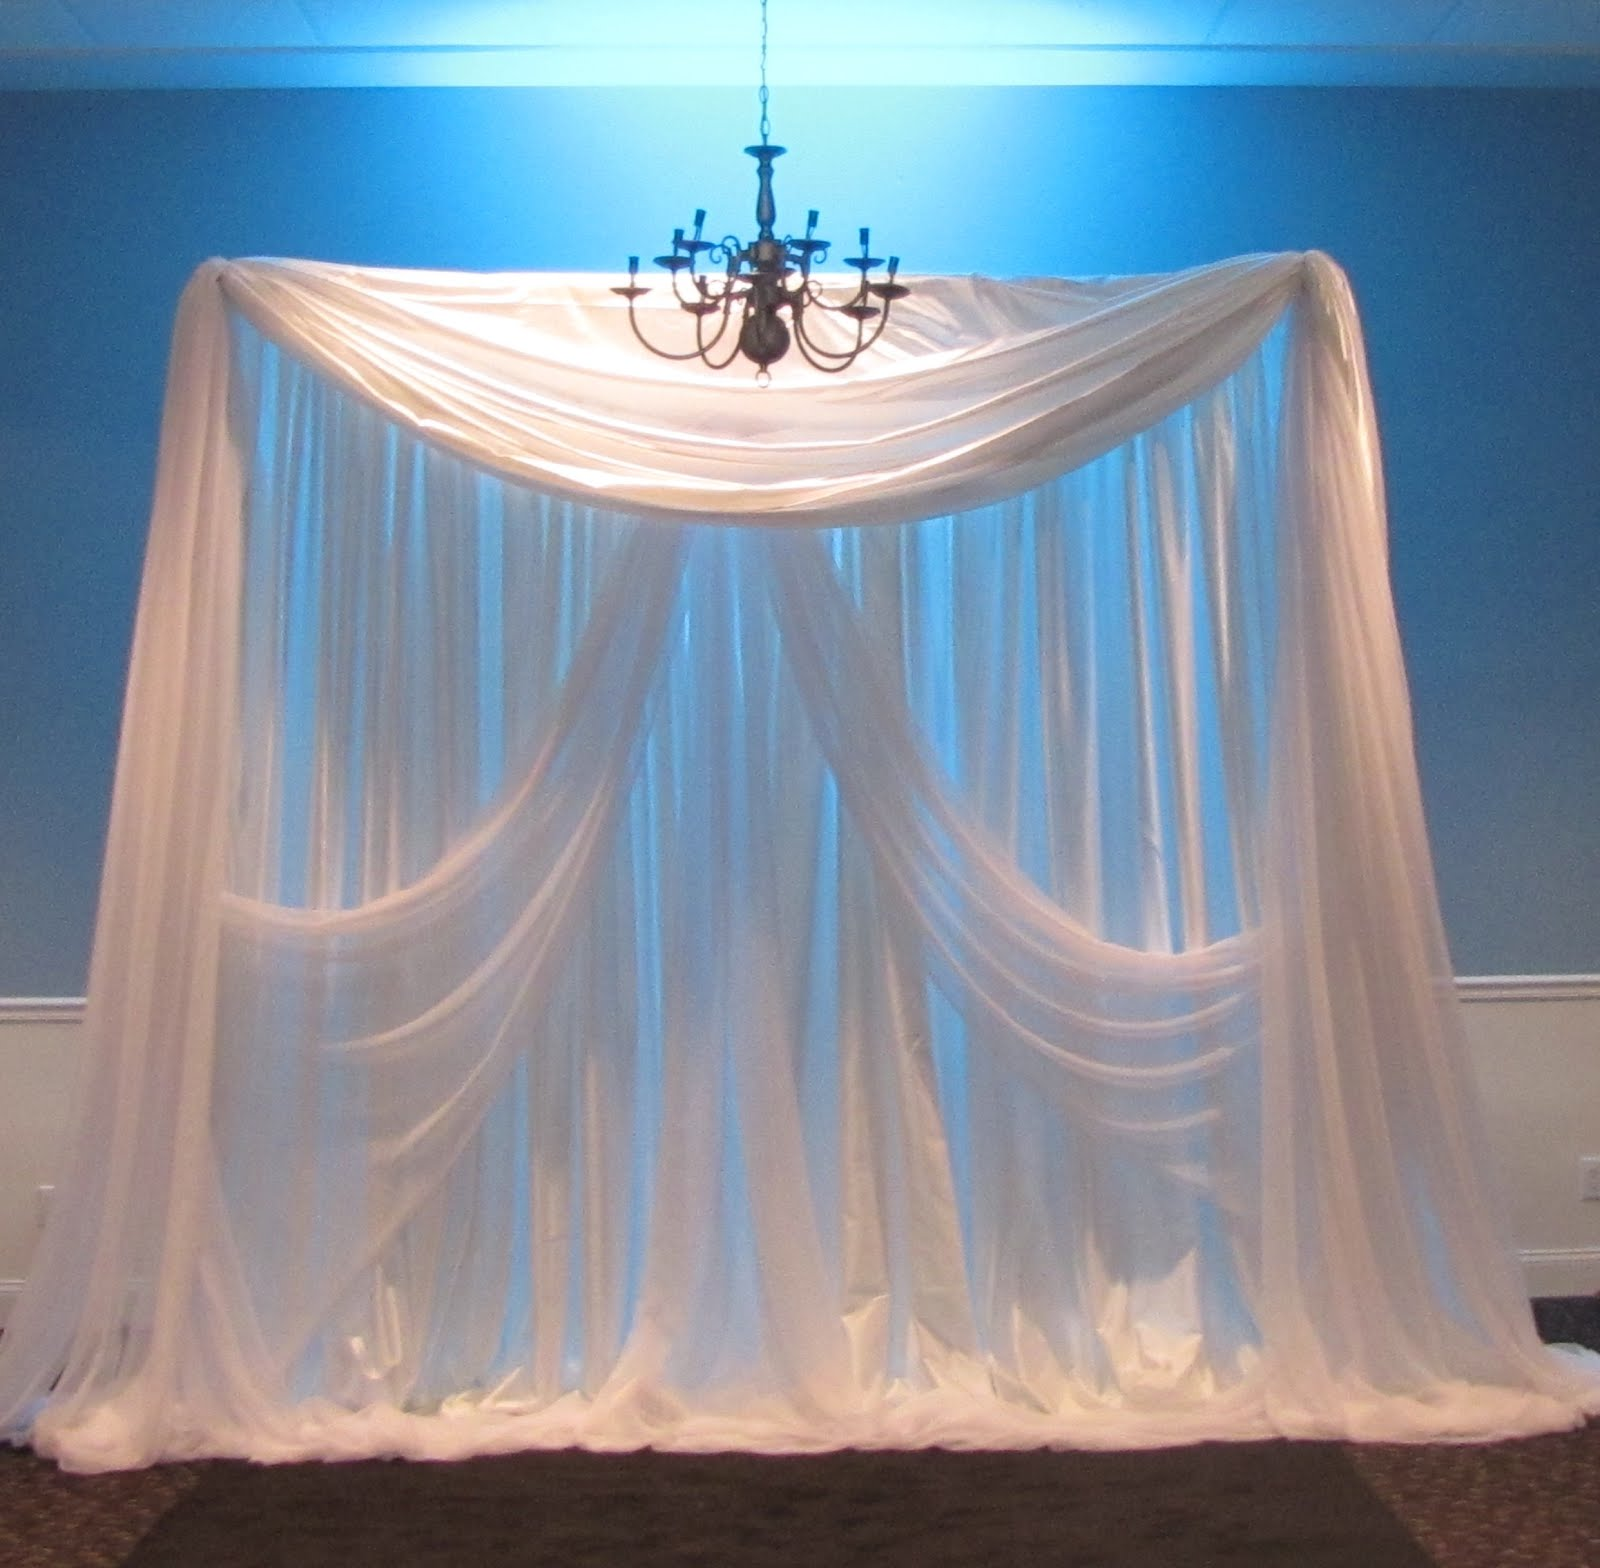 Wedding Backdrop Ideas: Party People Event Decorating Company: Elegant Wedding